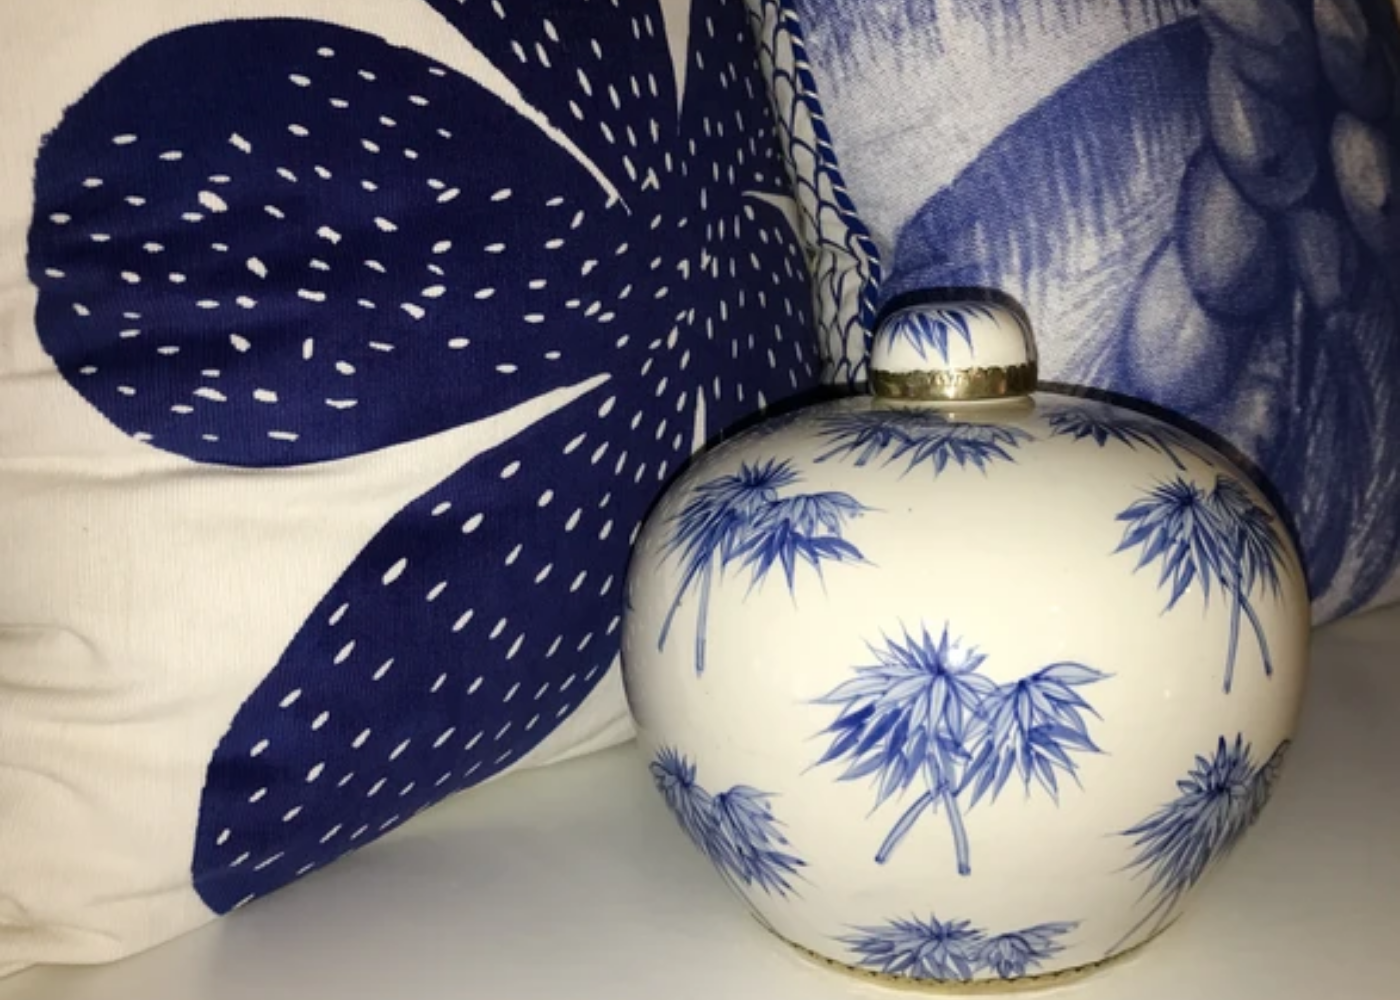 Shiva Designs | Blue and White chinoiserie